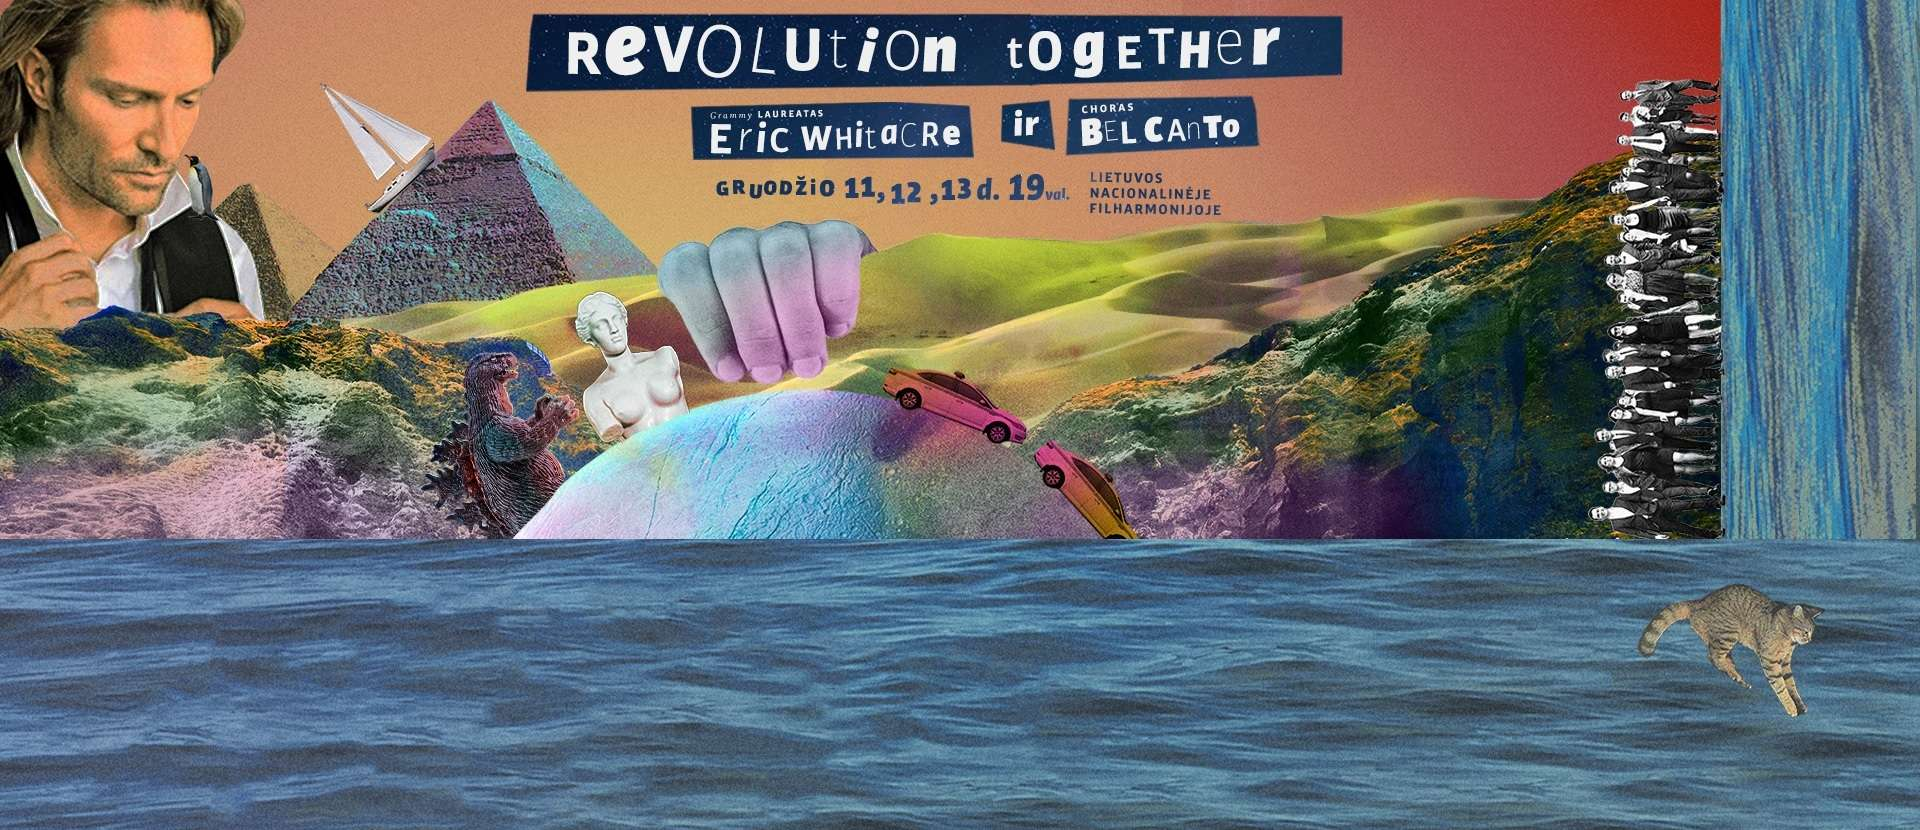 Eric Whitacre ir choras Bel Canto pristato: Revolution Together